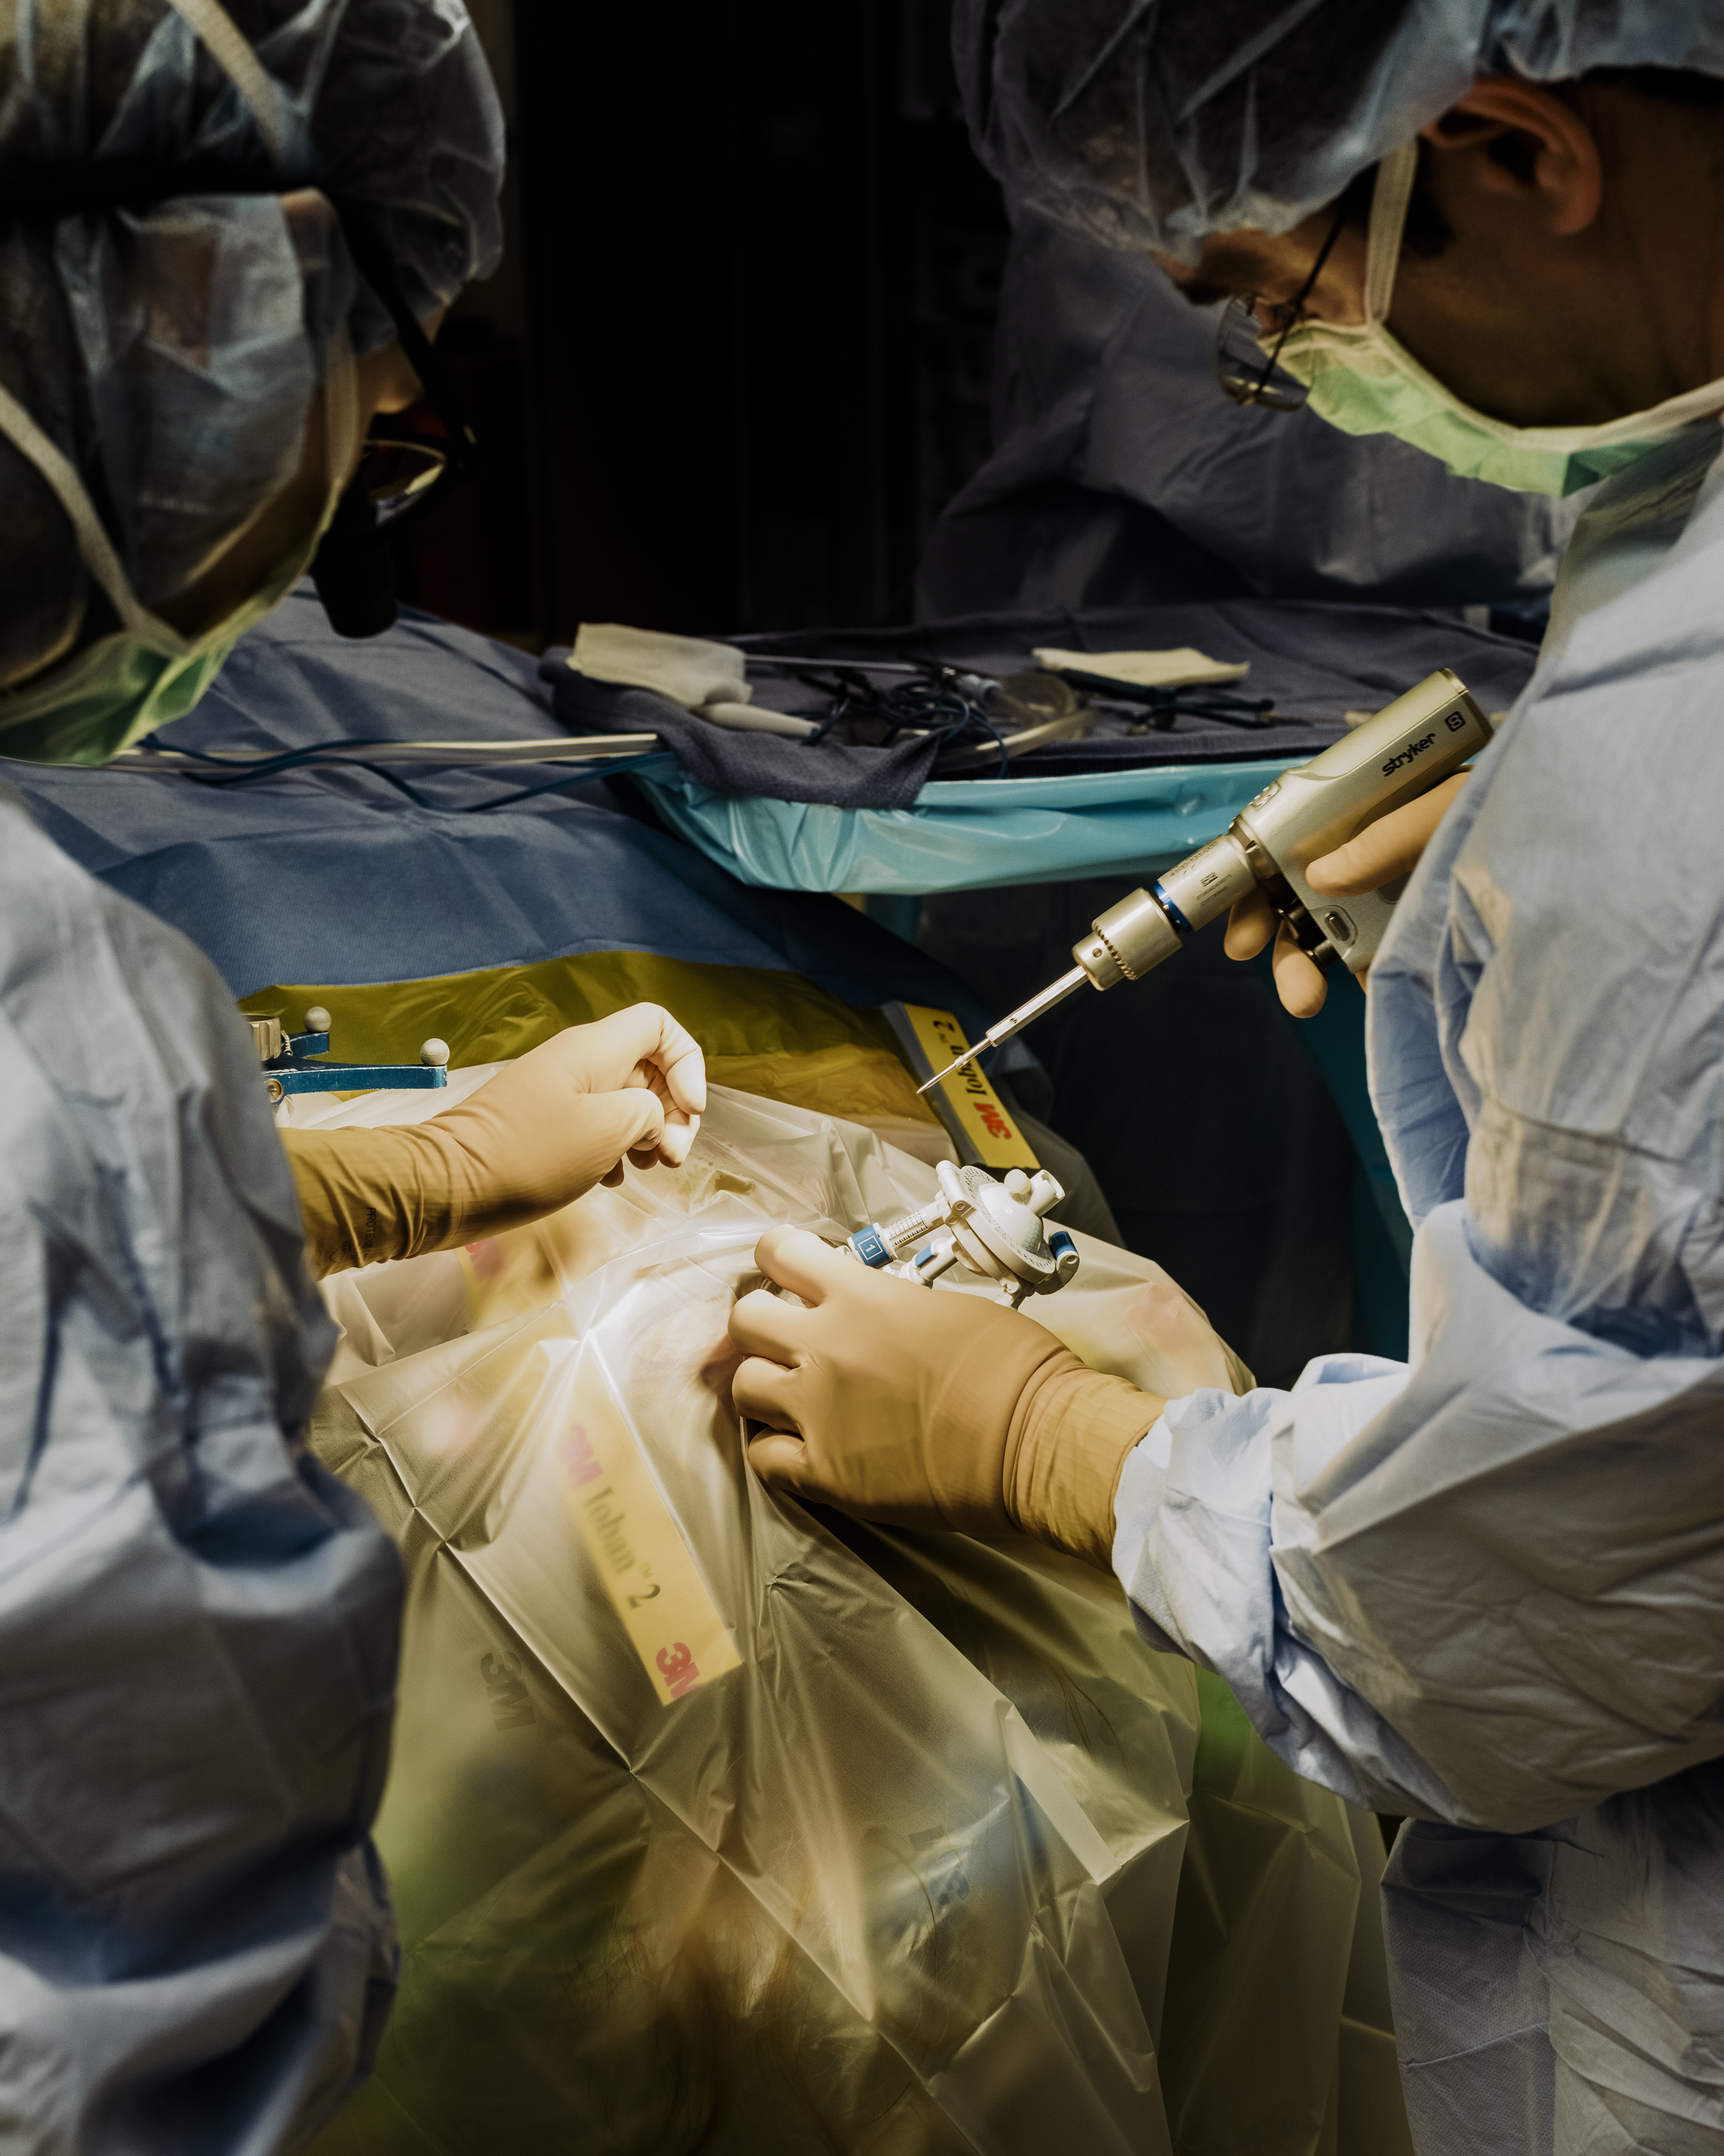 """<b><a href=""""https://www.technologyreview.com/s/609232/the-surgeon-who-wants-to-connect-you-to-the-internet-with-a-brain-implant/"""" target=""""_blank"""">The Surgeon Who Wants to Connect You to the Internet with a Brain Implant</a></b> <br> Photographs by Whitten Sabbatini"""